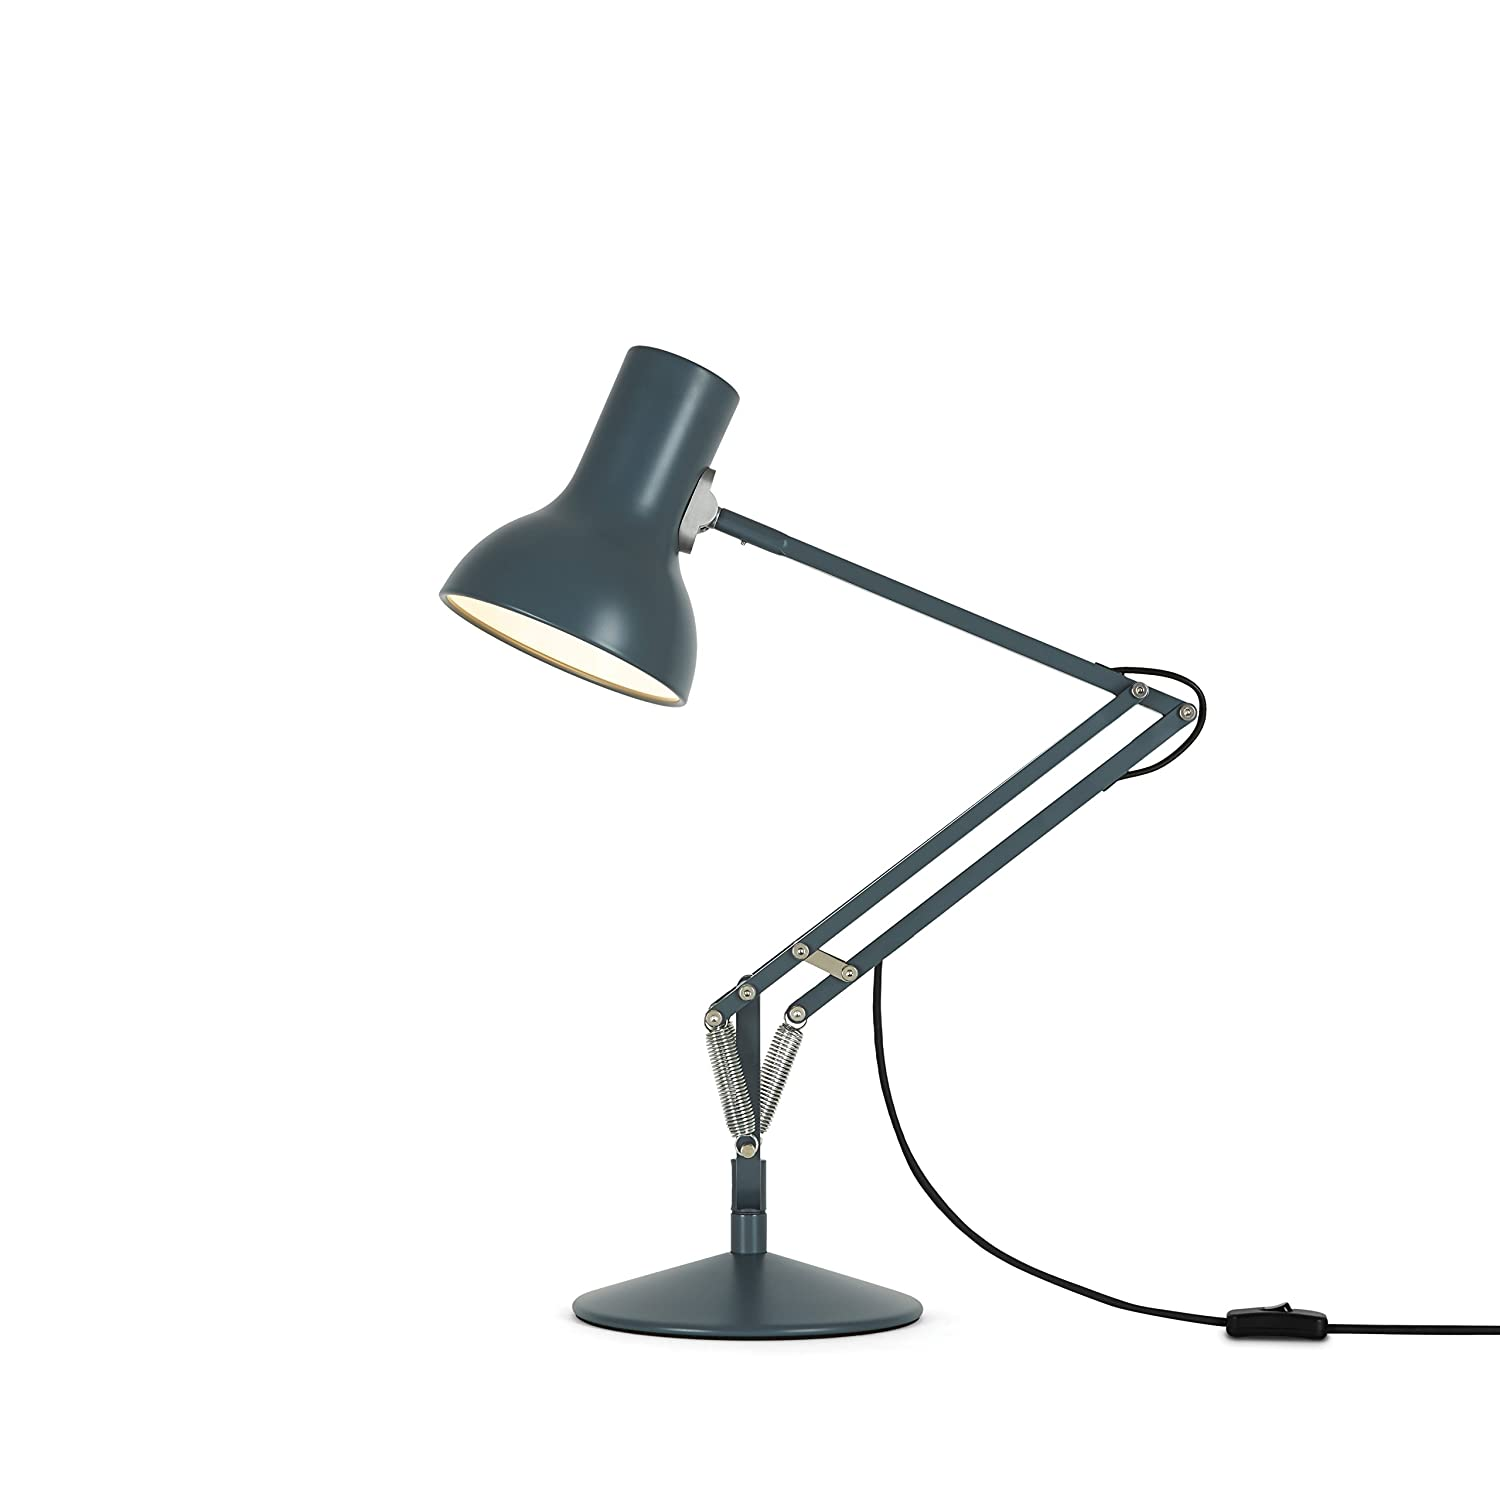 yellow desk ochre buyanglepoise online anglepoise com lamp rsp howell edition main at margaret pdp type johnlewis